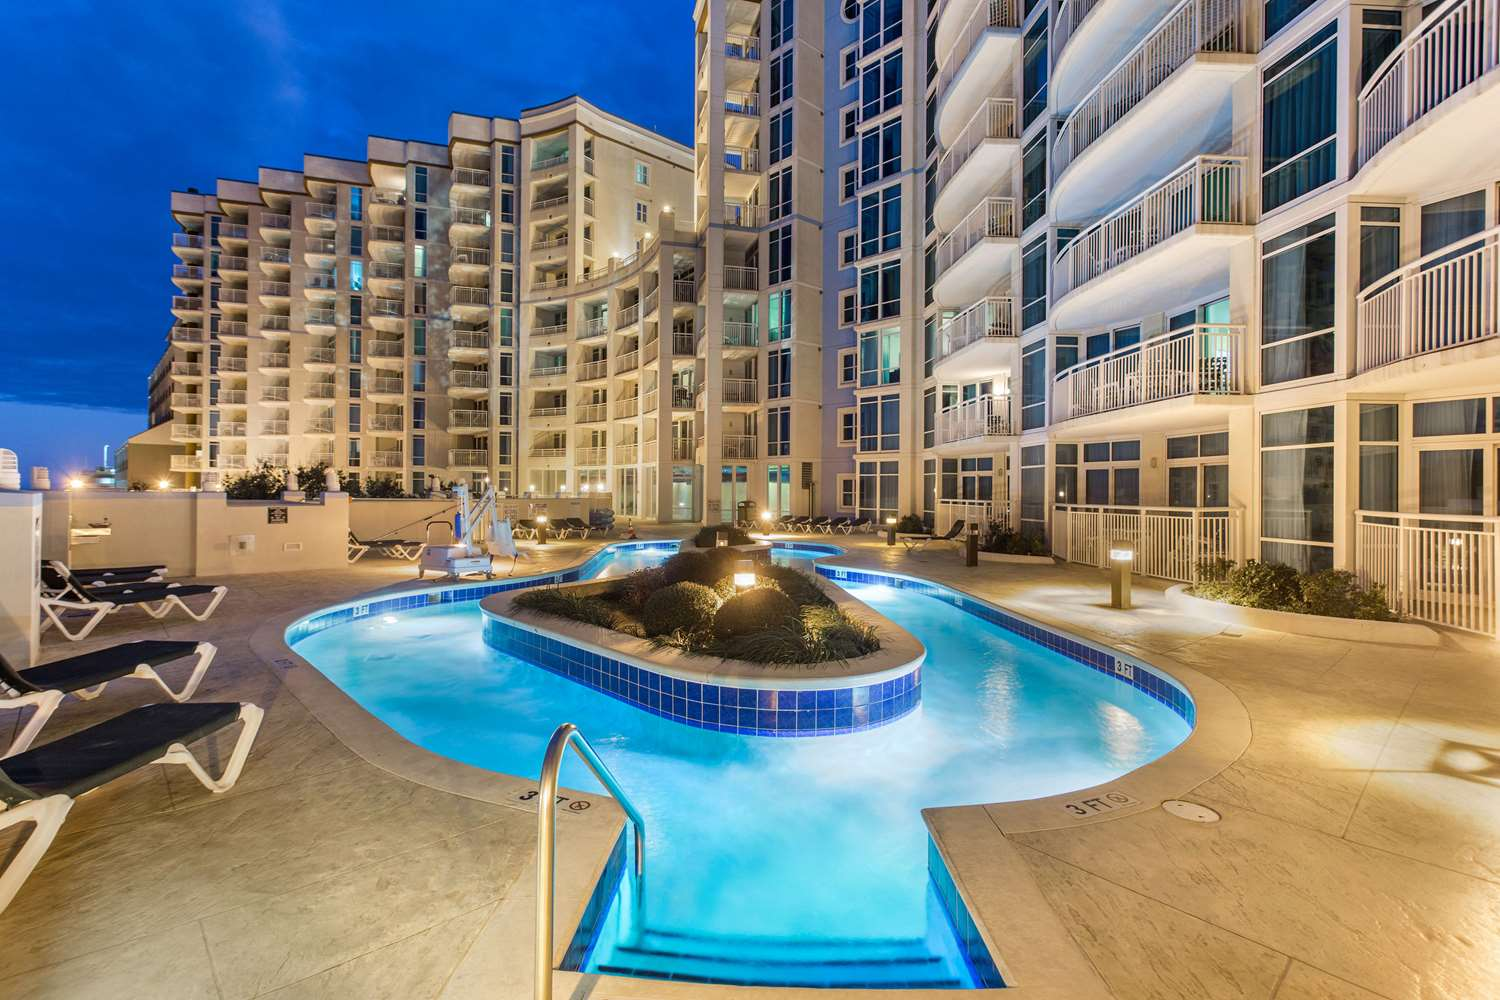 Pool Bluegreen Vacations Horizons At 77th Resort Myrtle Beach